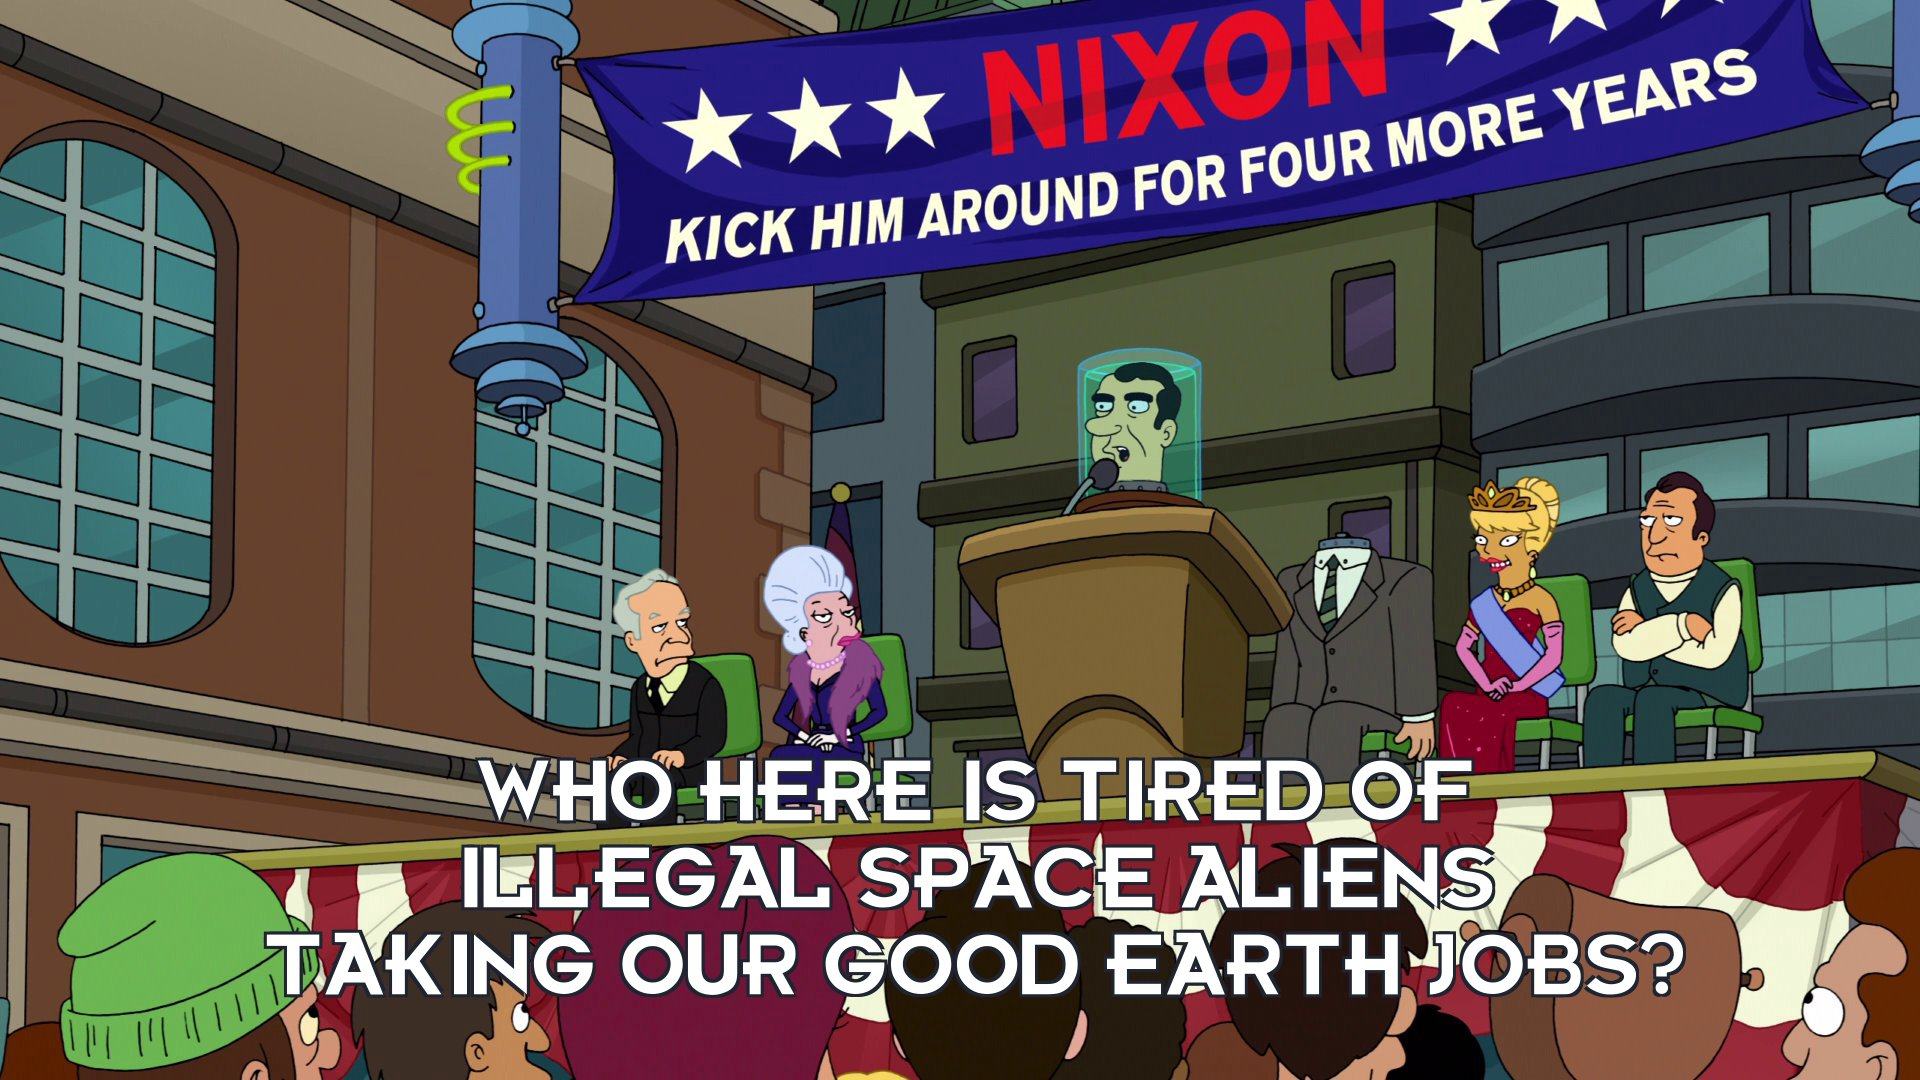 Richard Nixon's head: Who here is tired of illegal space aliens taking our good Earth jobs?